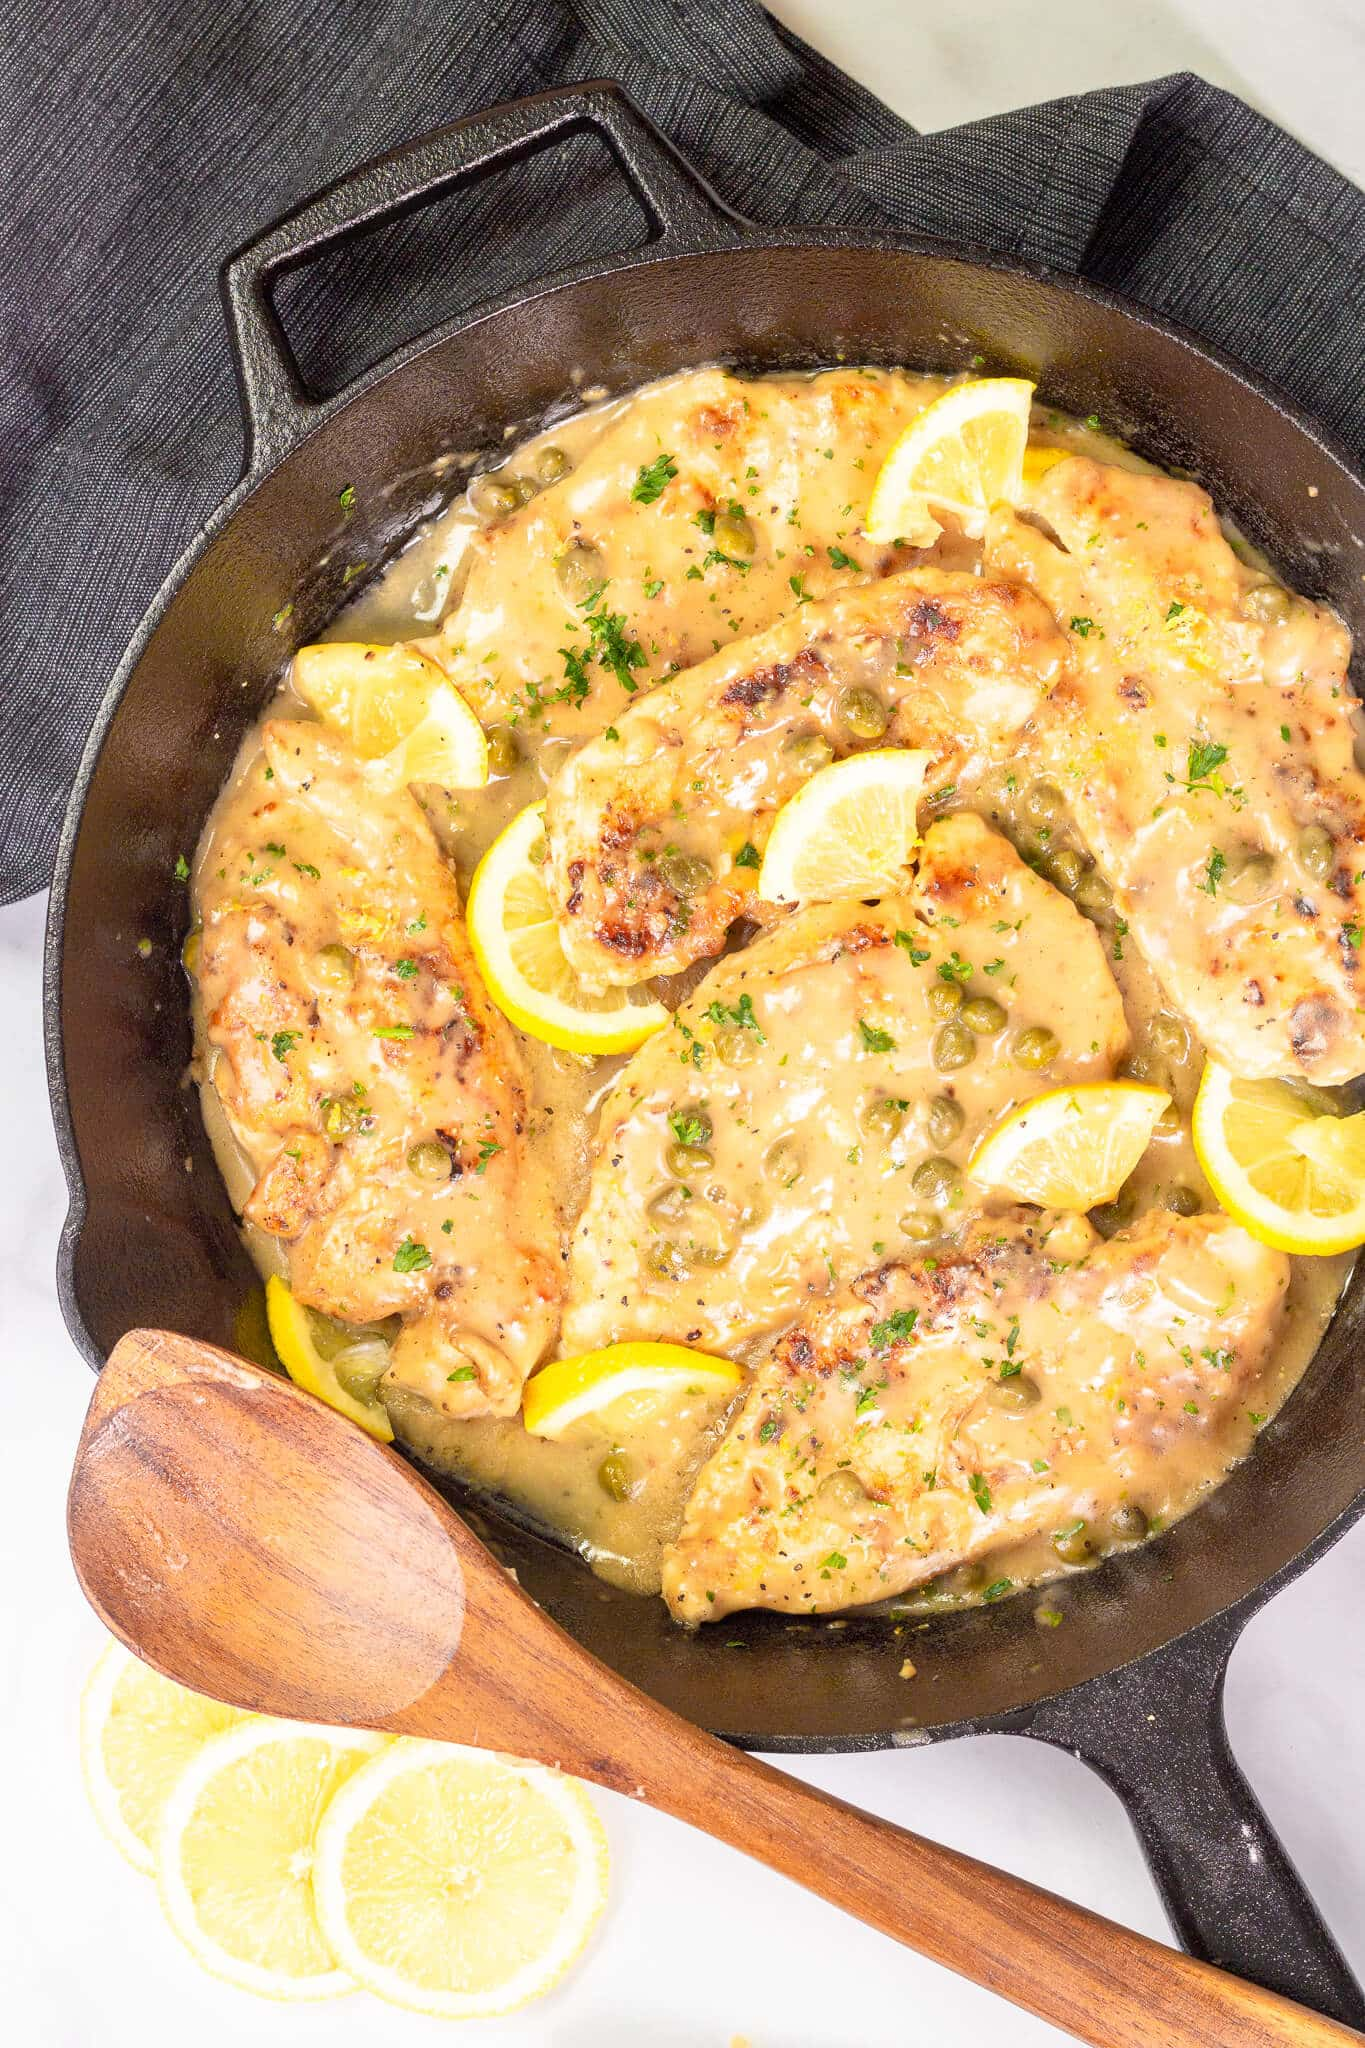 Lemon chicken piccata in a cast iron serving dish.